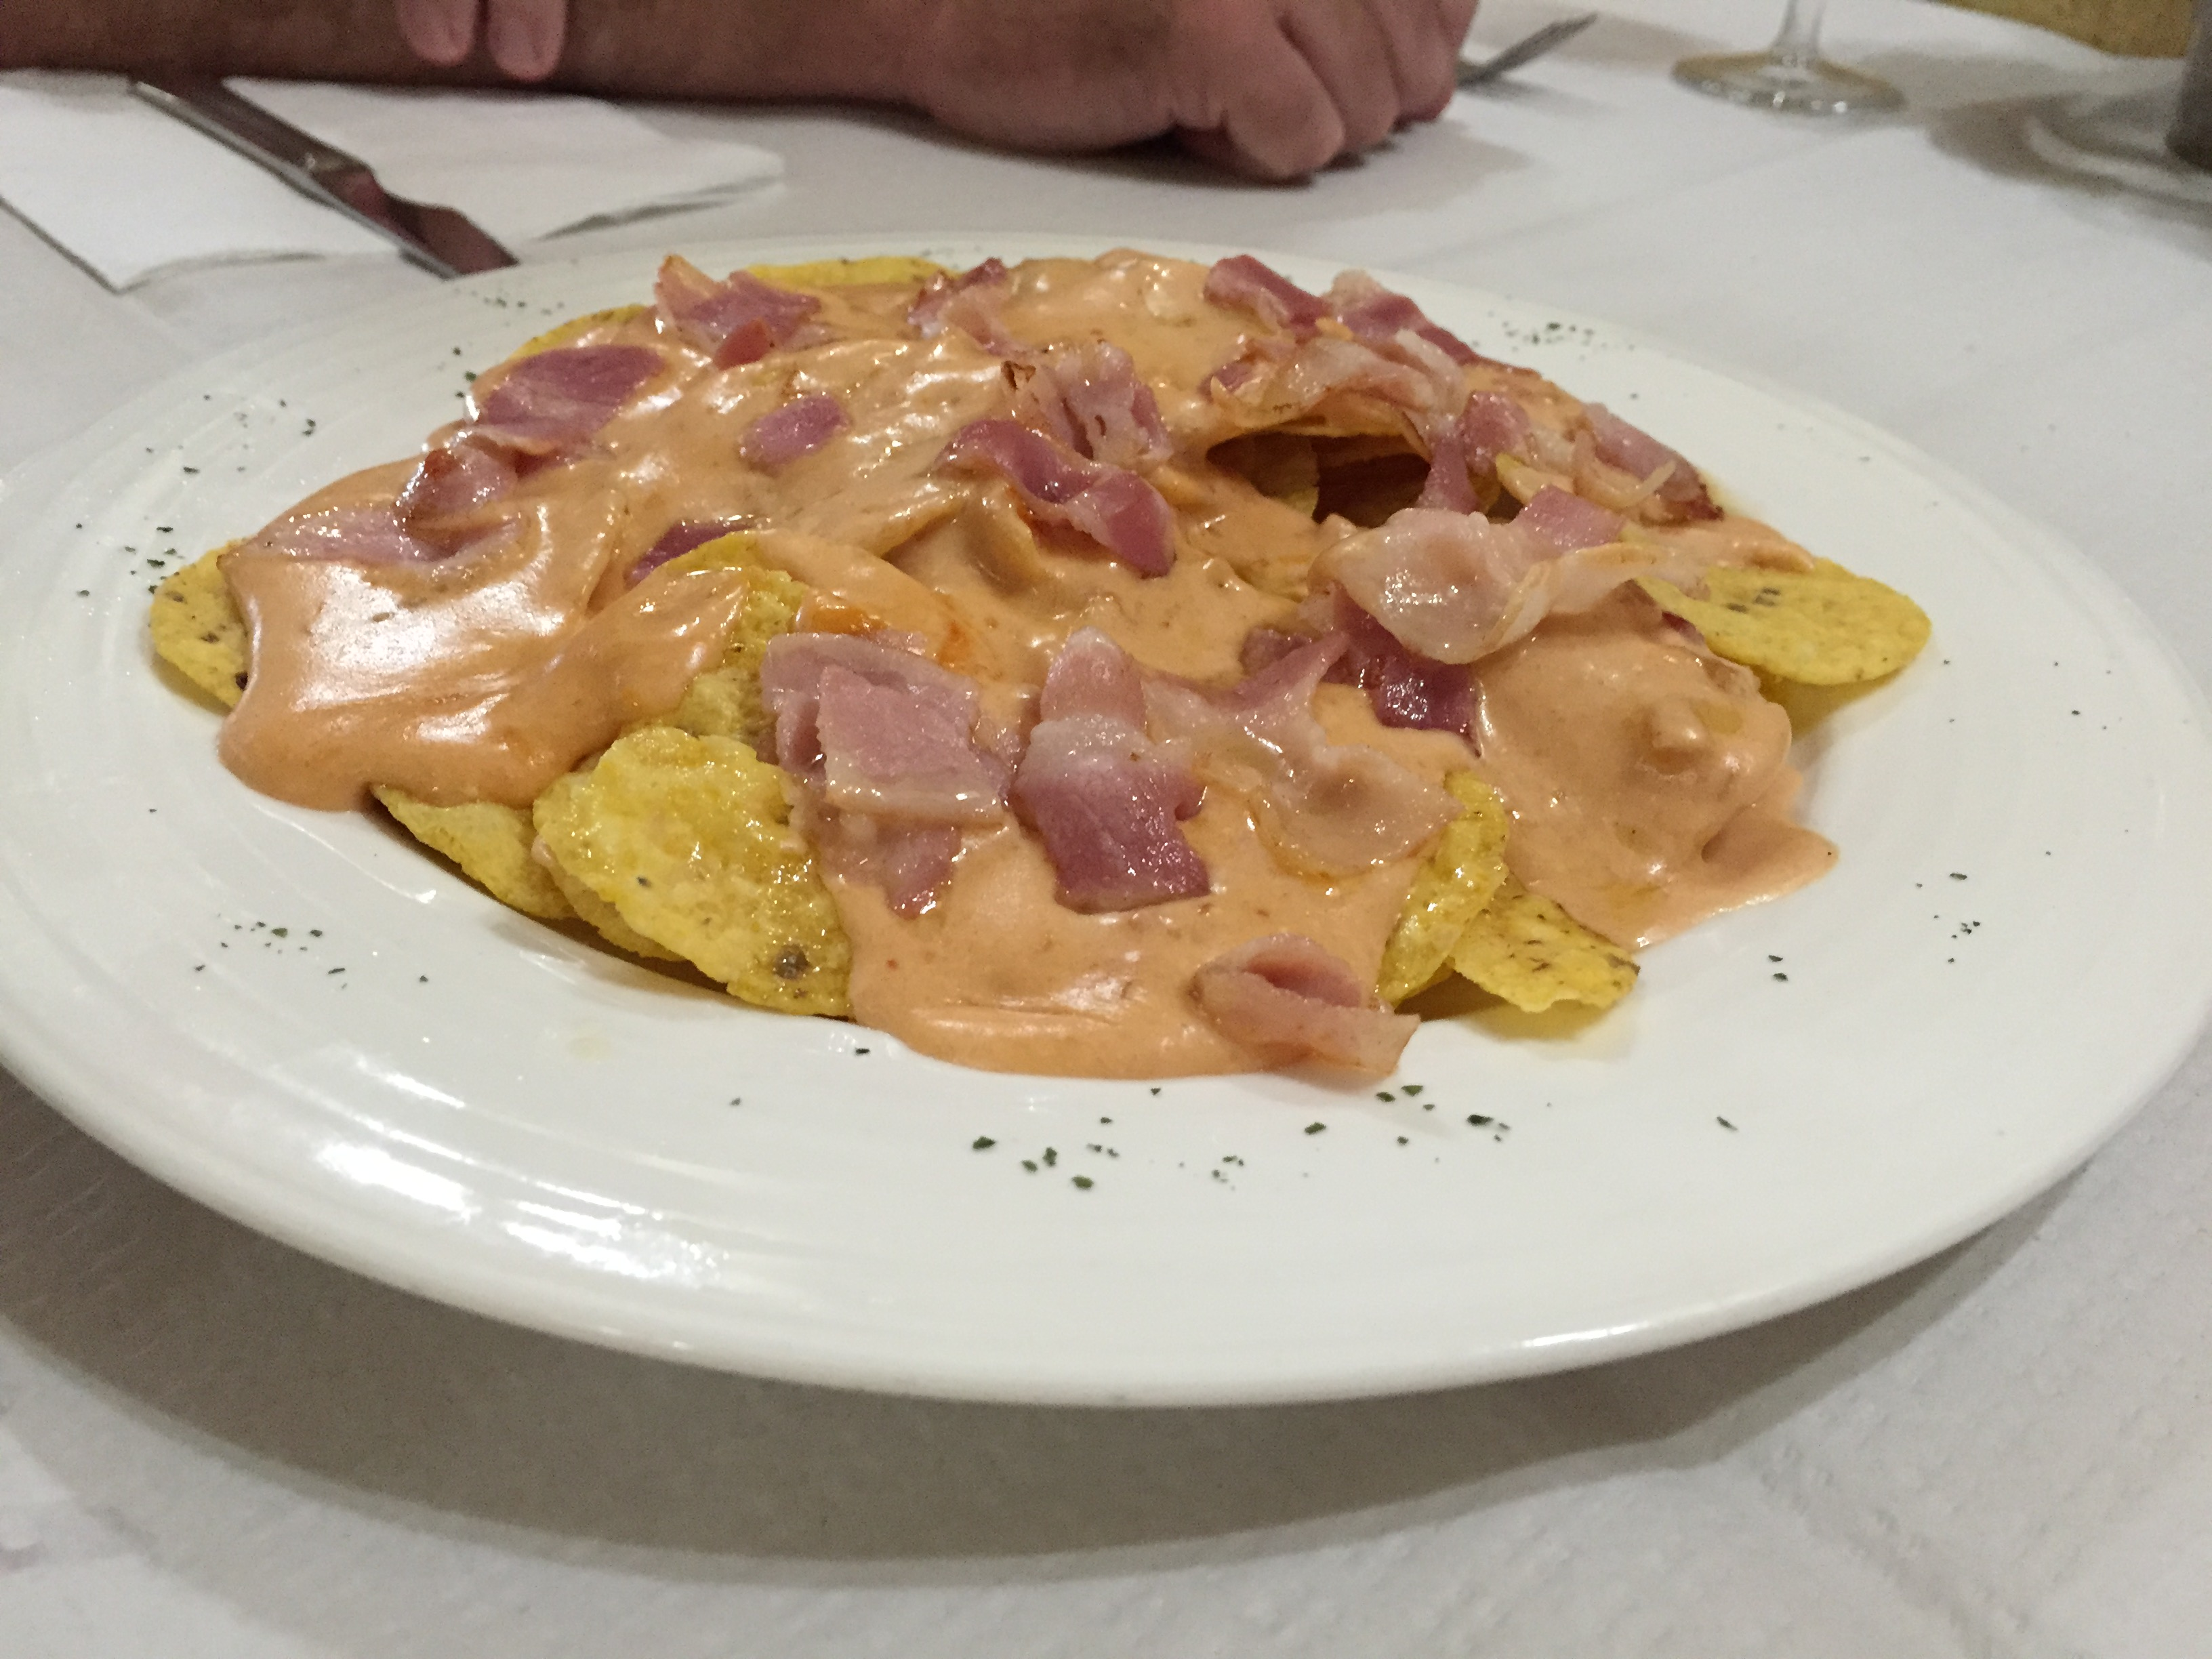 Nachos, the Spanish way with jamon of course.